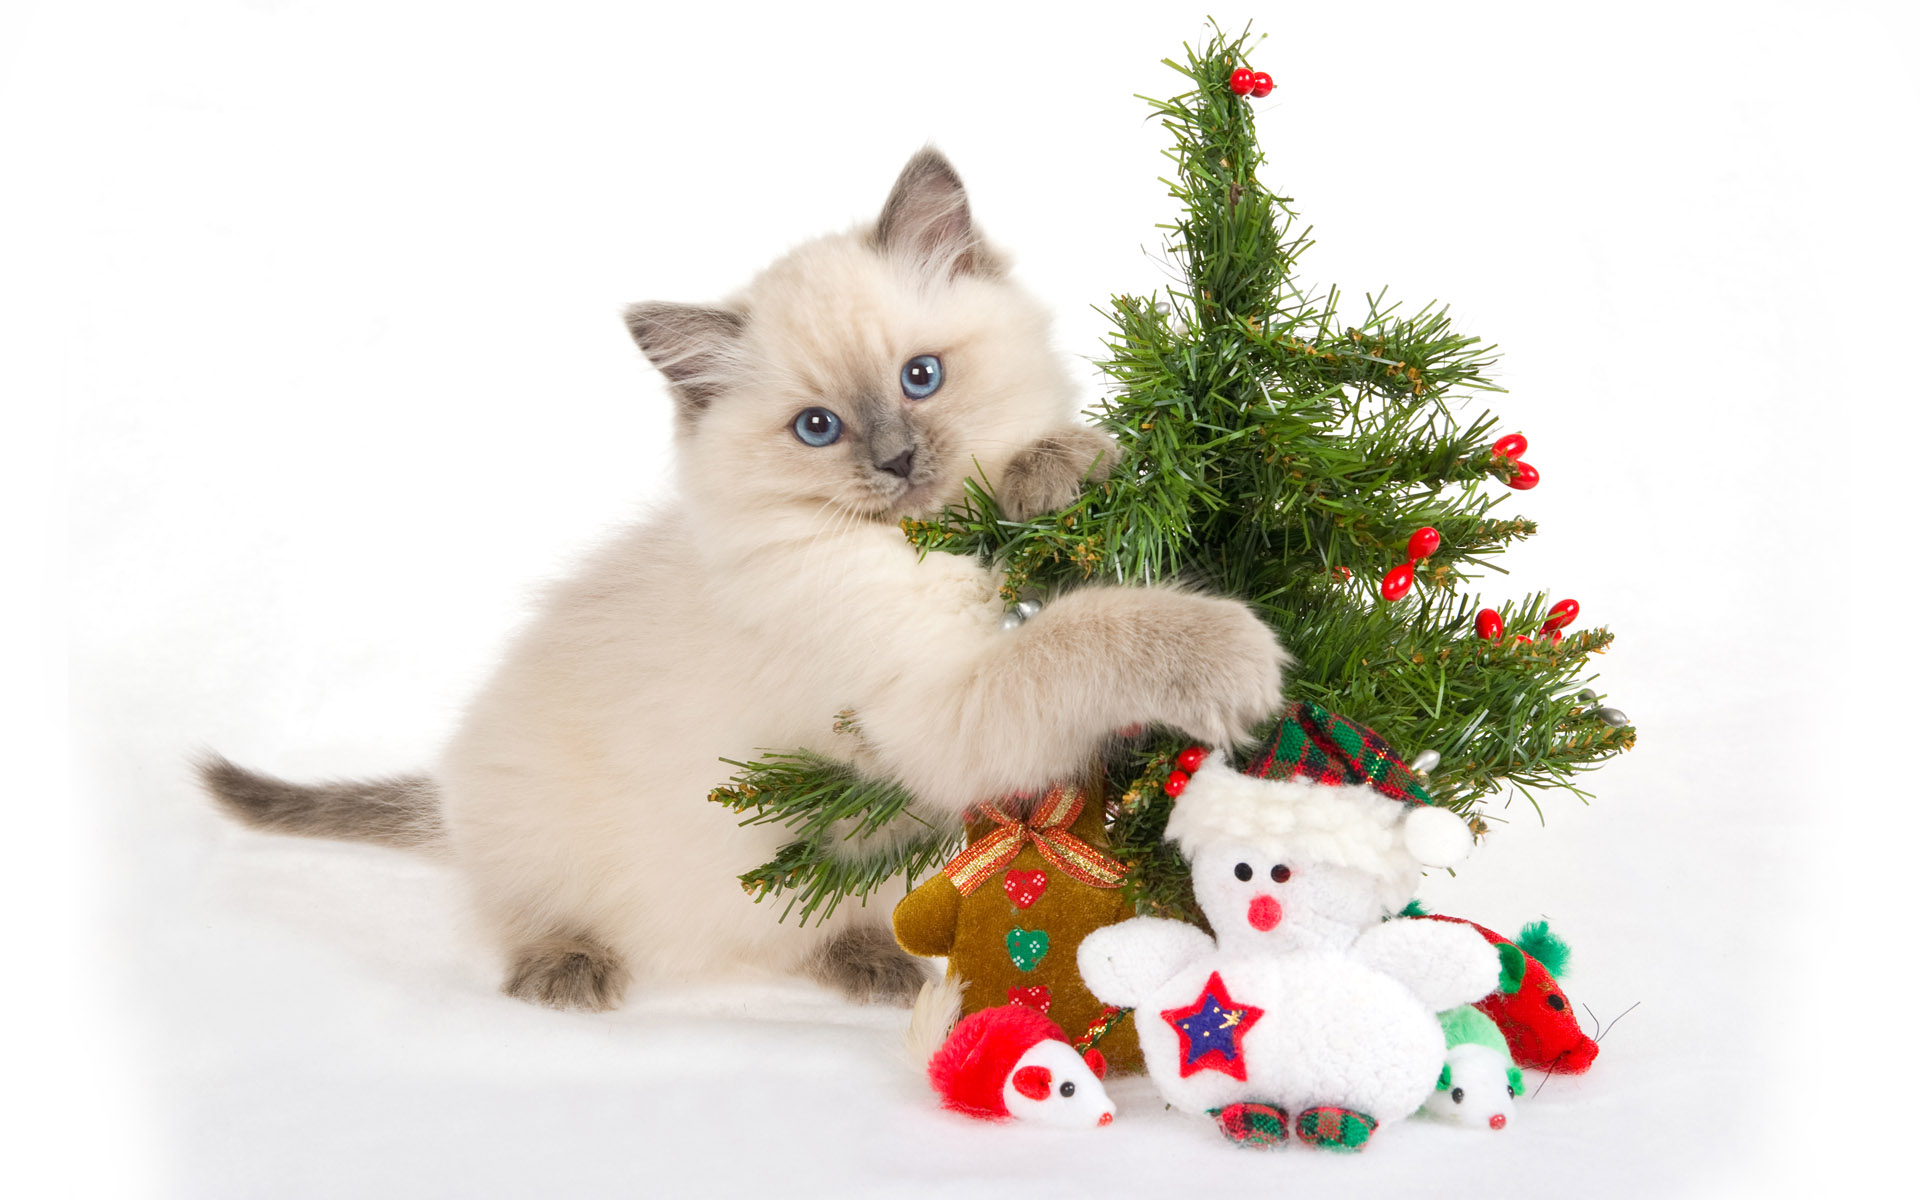 Christmas-Cat-Desktop-HD-Inn-wallpaper-wp5205219